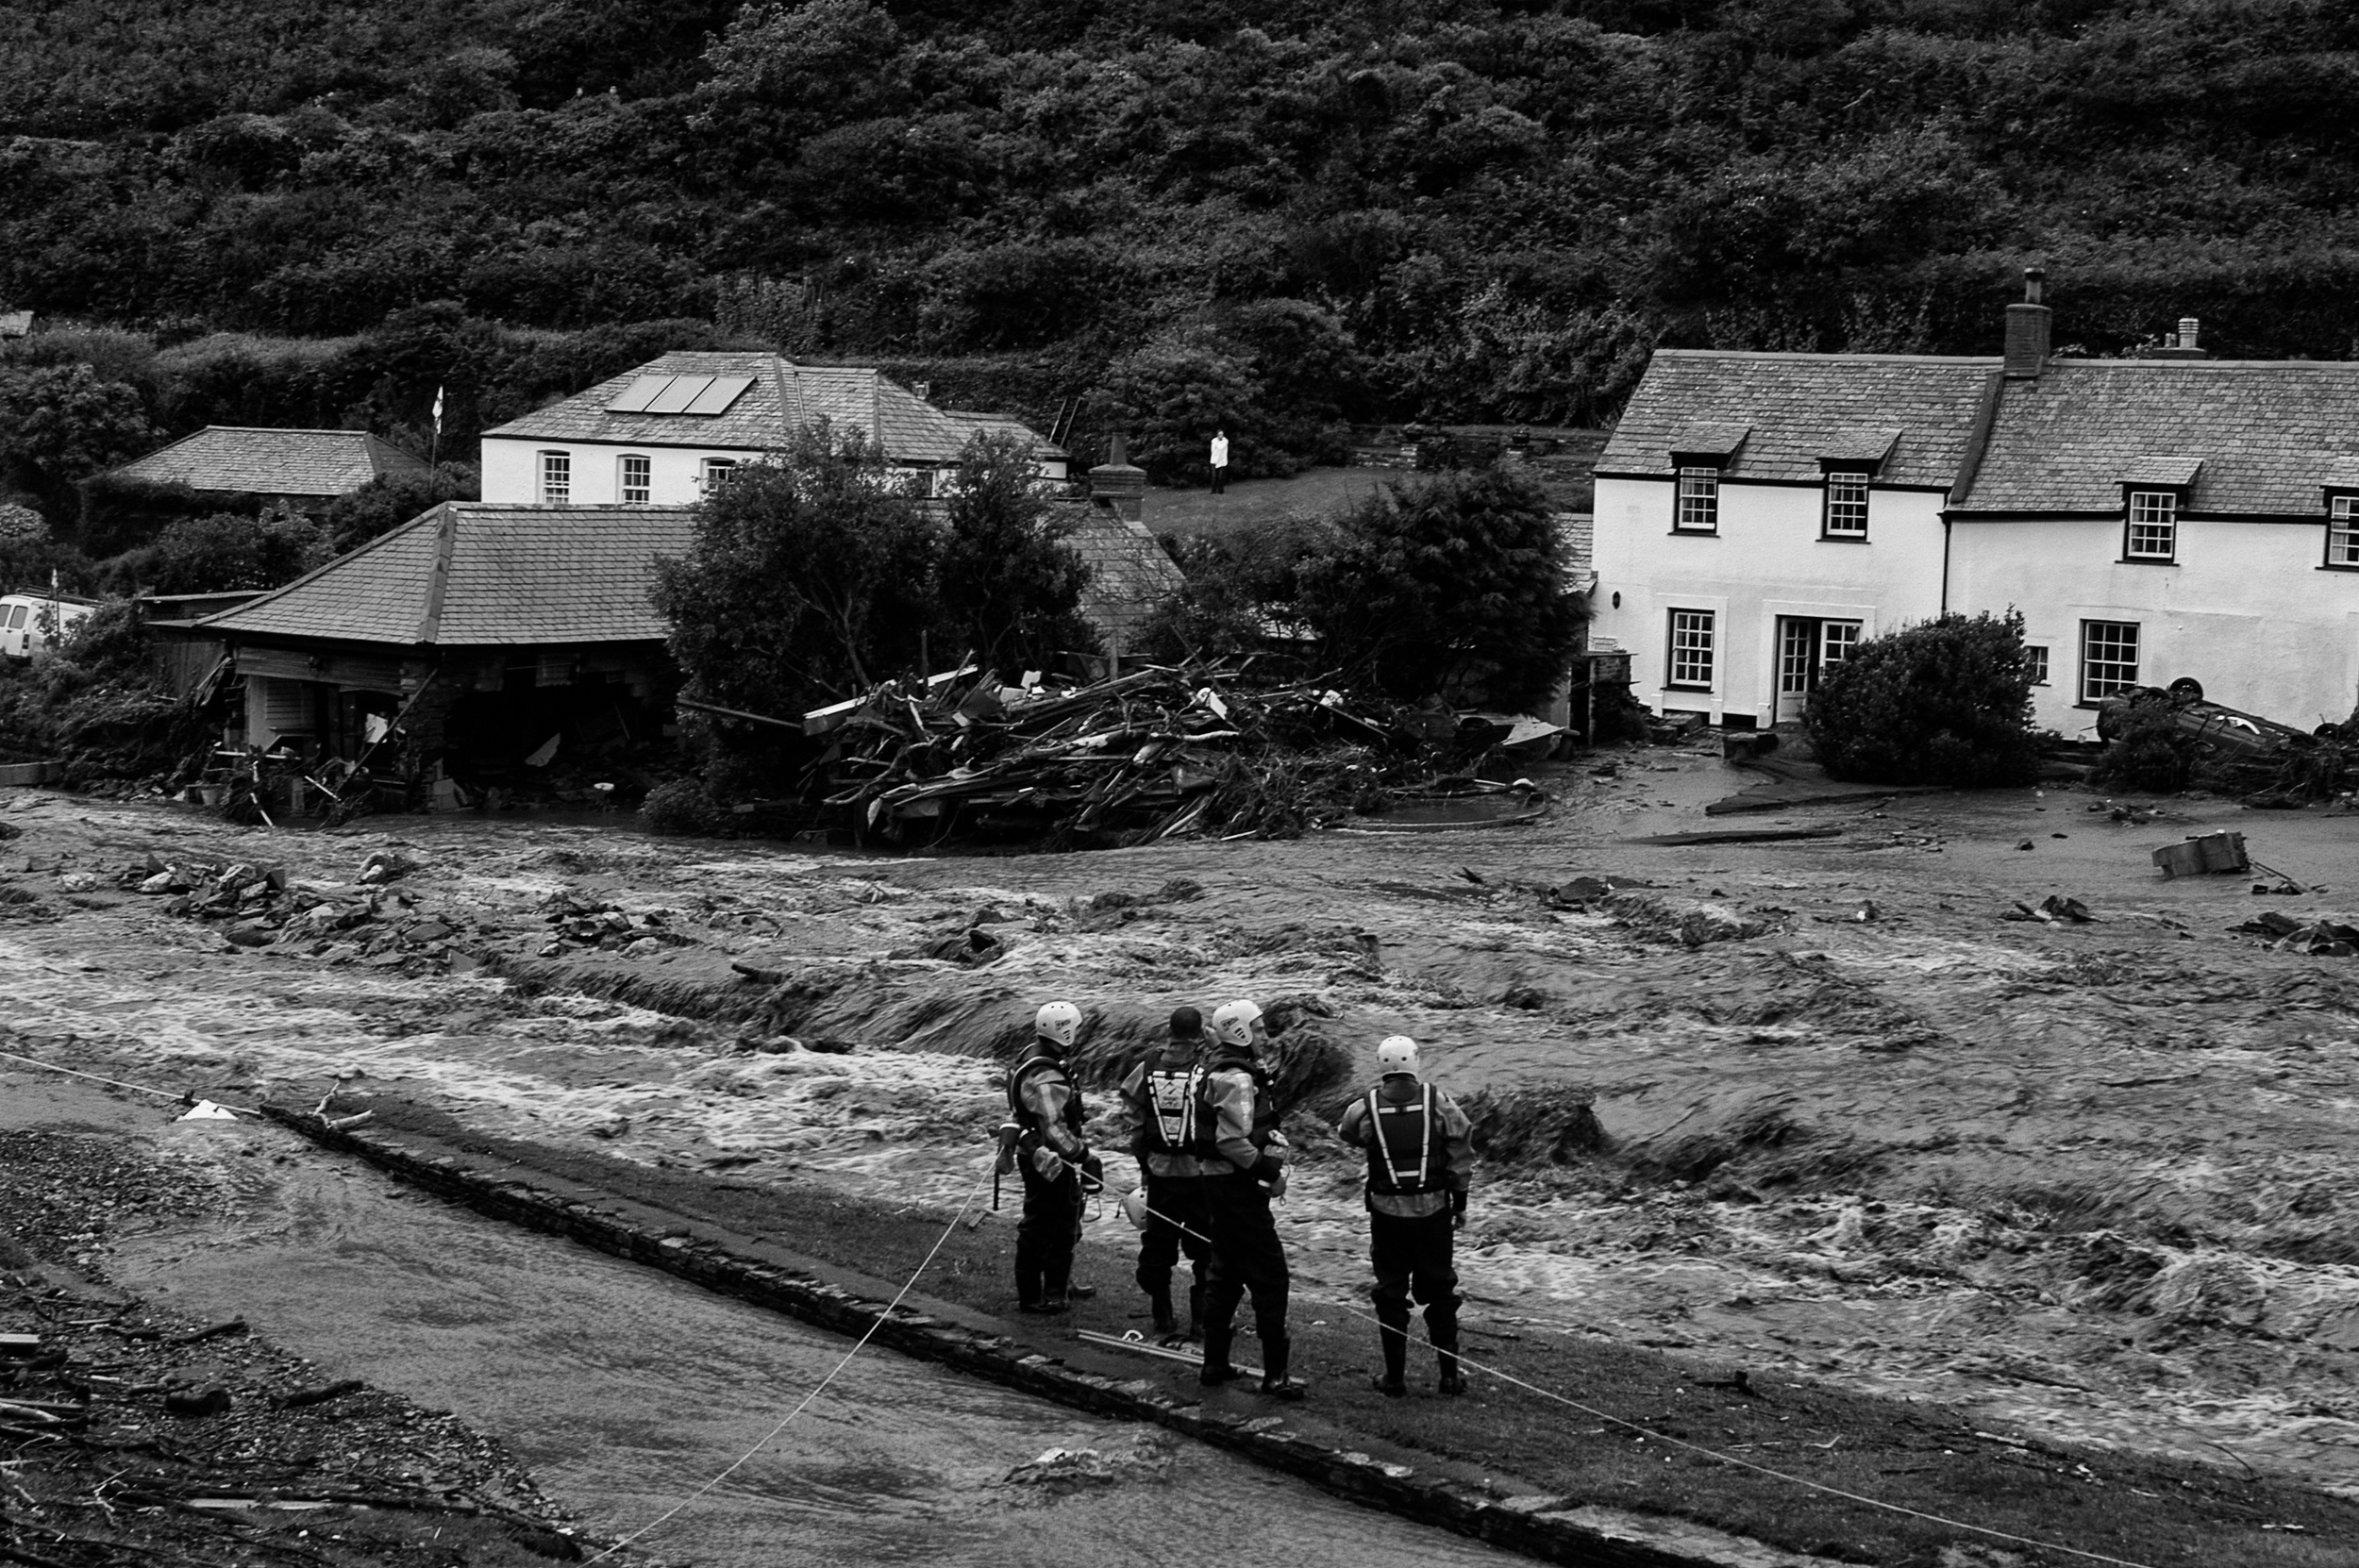 Fire brigade and the RNLI search and rescue fast rope teams looking for flood victims in Boscastle, Cornwall, August 16, 2004. (Photo/Mark Pearson)